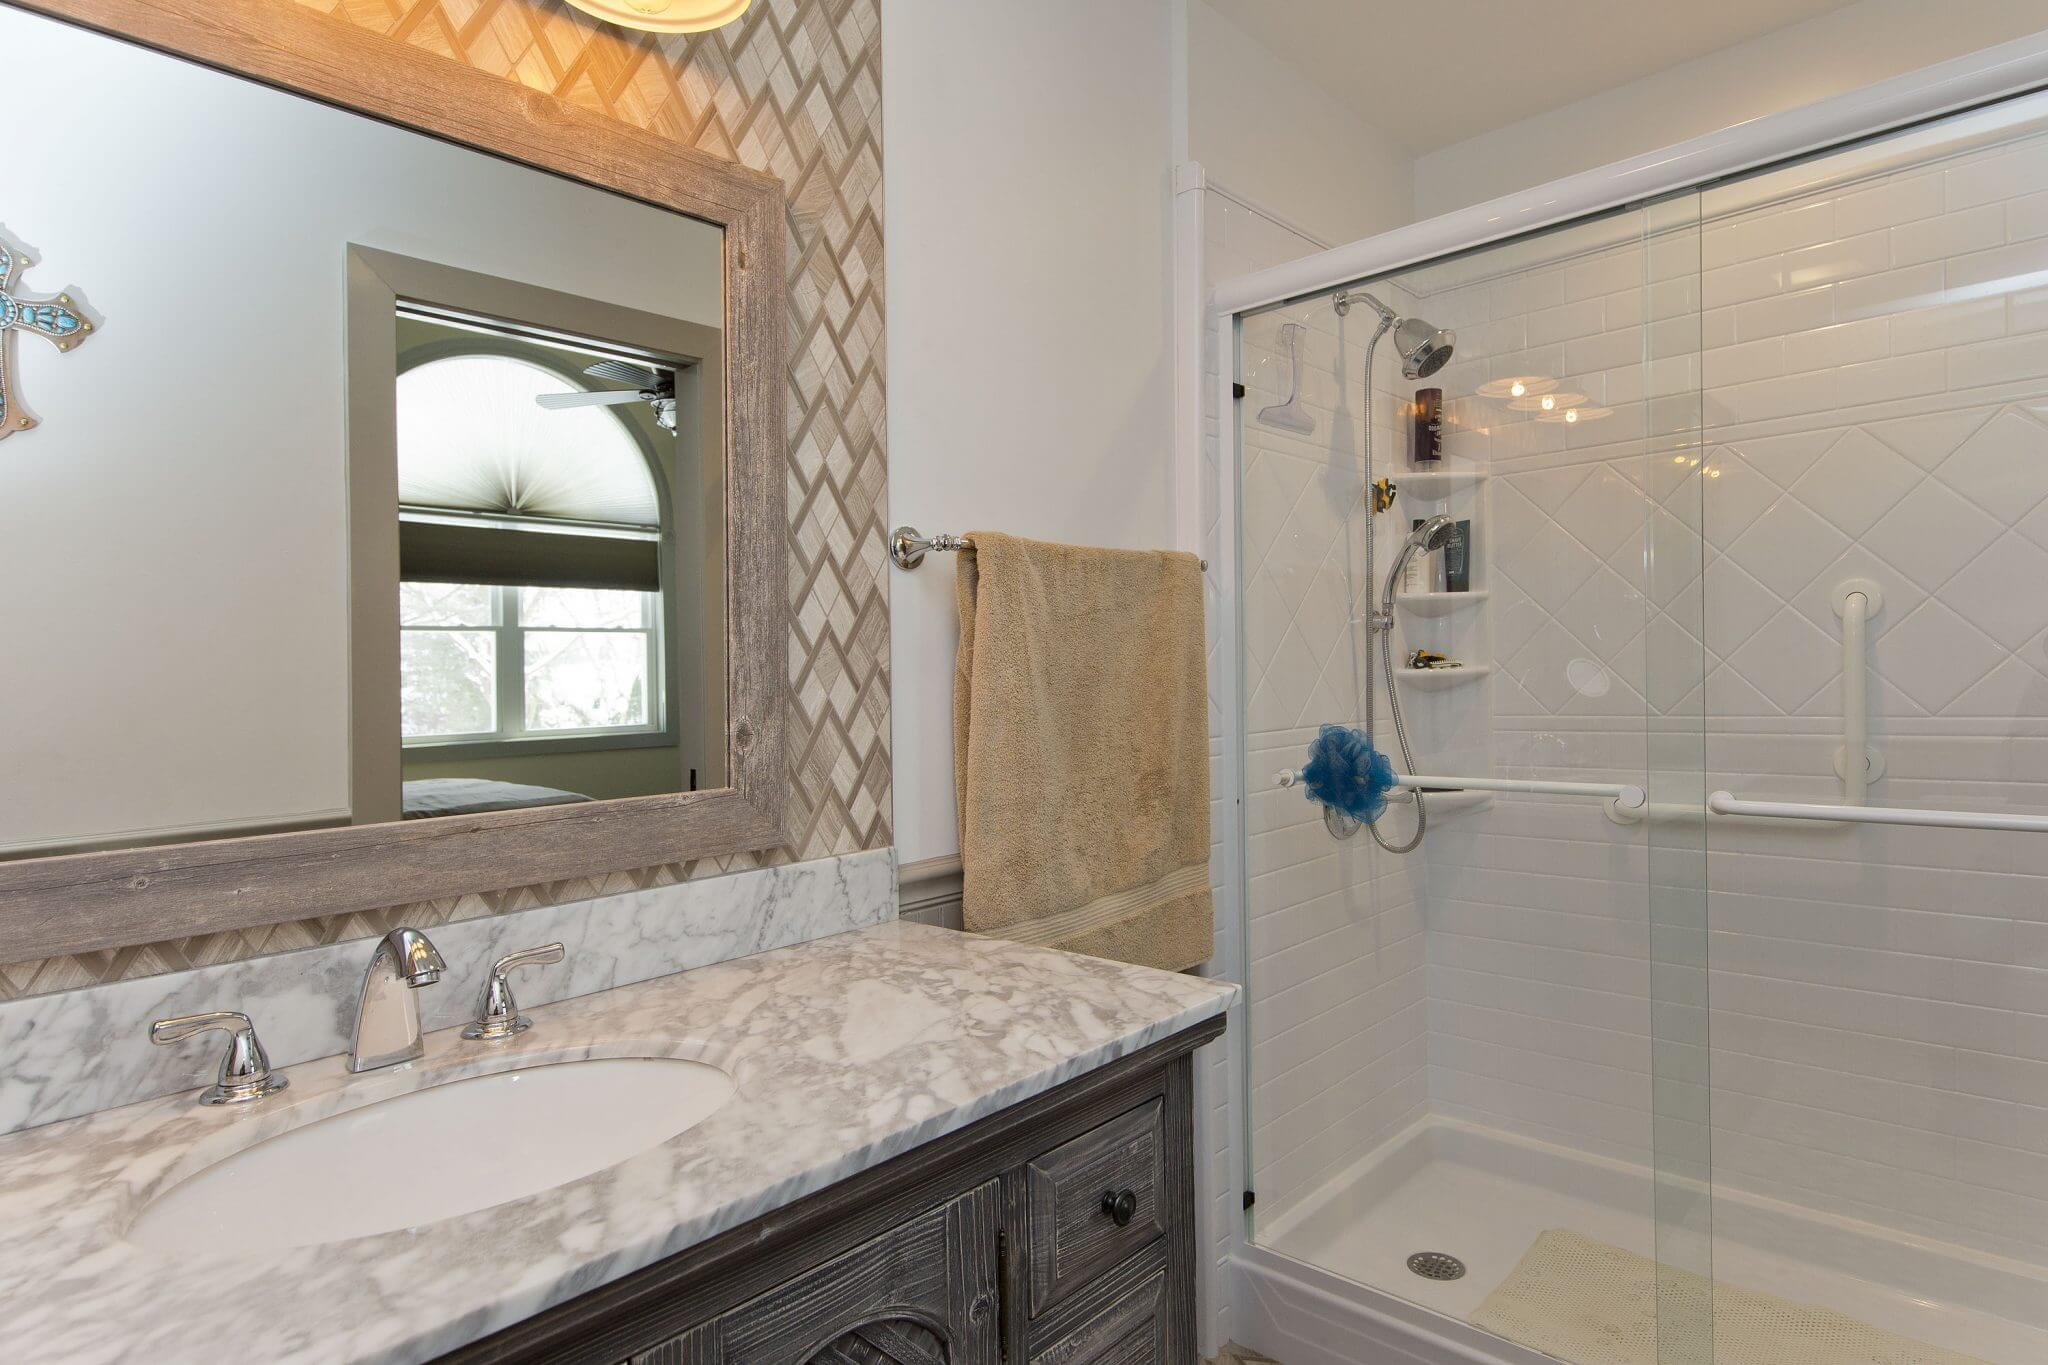 Professional Designer Home Renovation bathroom shower